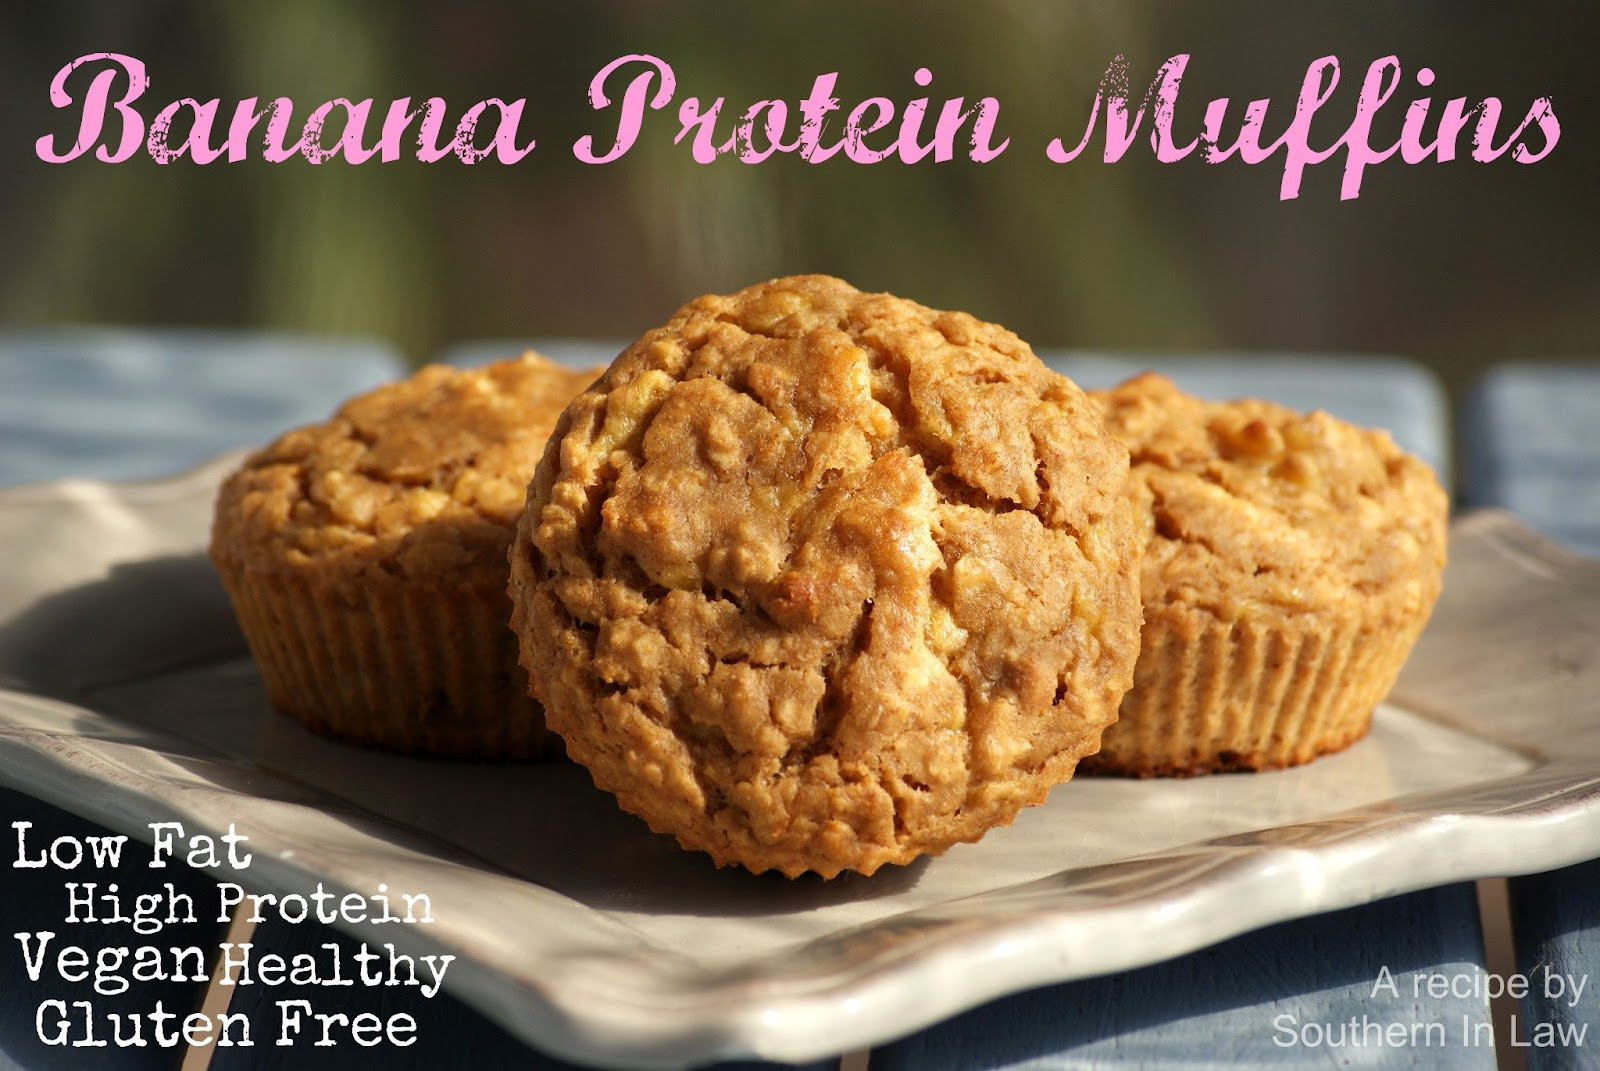 Vegan Protein Muffins Healthy  Southern In Law Recipe Banana Protein Muffins